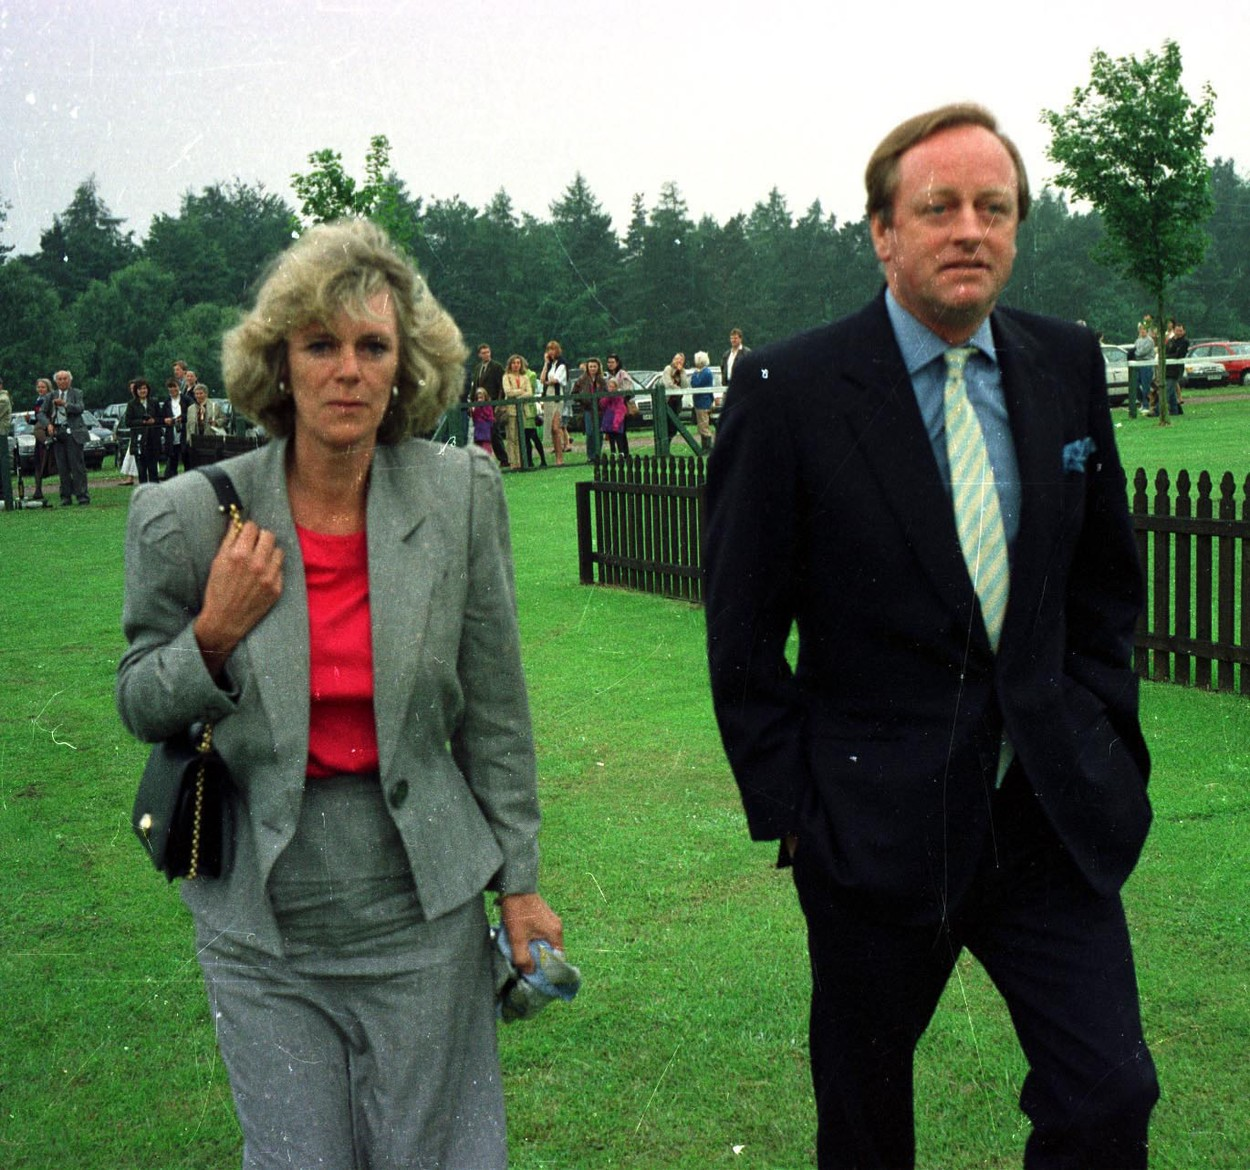 CAMILLA and ANDREW PARKER BOWLES enjoy a day at the races - Date: 07.06.1992., Image: 22417518, License: Rights-managed, Restrictions: FEE PAYABLE UPON REPRODUCTION Universal Pictorial Press & Agency 29-31 Saffron Hill, London. EC1N 8SW Tel: +44 (0)20 7421 6000, Model Release: no, Credit line: © Bandphoto / UPPA/Photoshot / Avalon Editorial / Profimedia